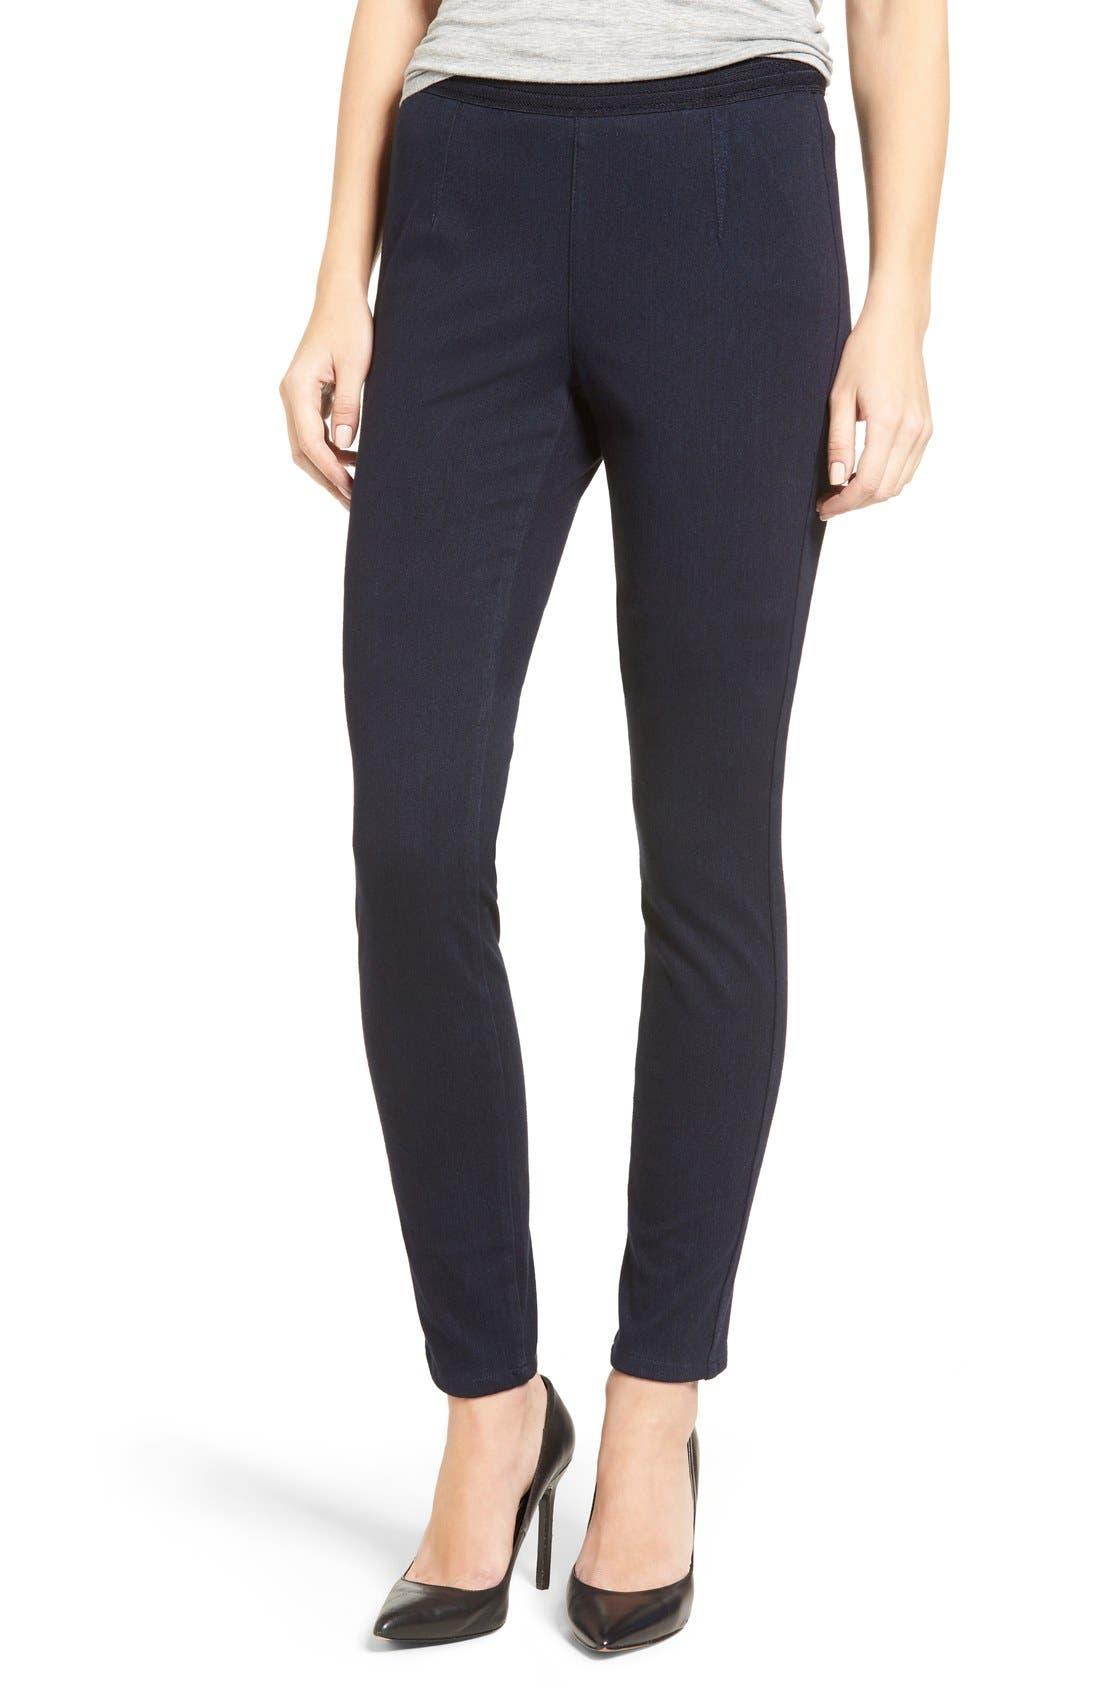 NYDJ Joanie Stretch Denim Leggings (Oslo) (Regular & Petite)